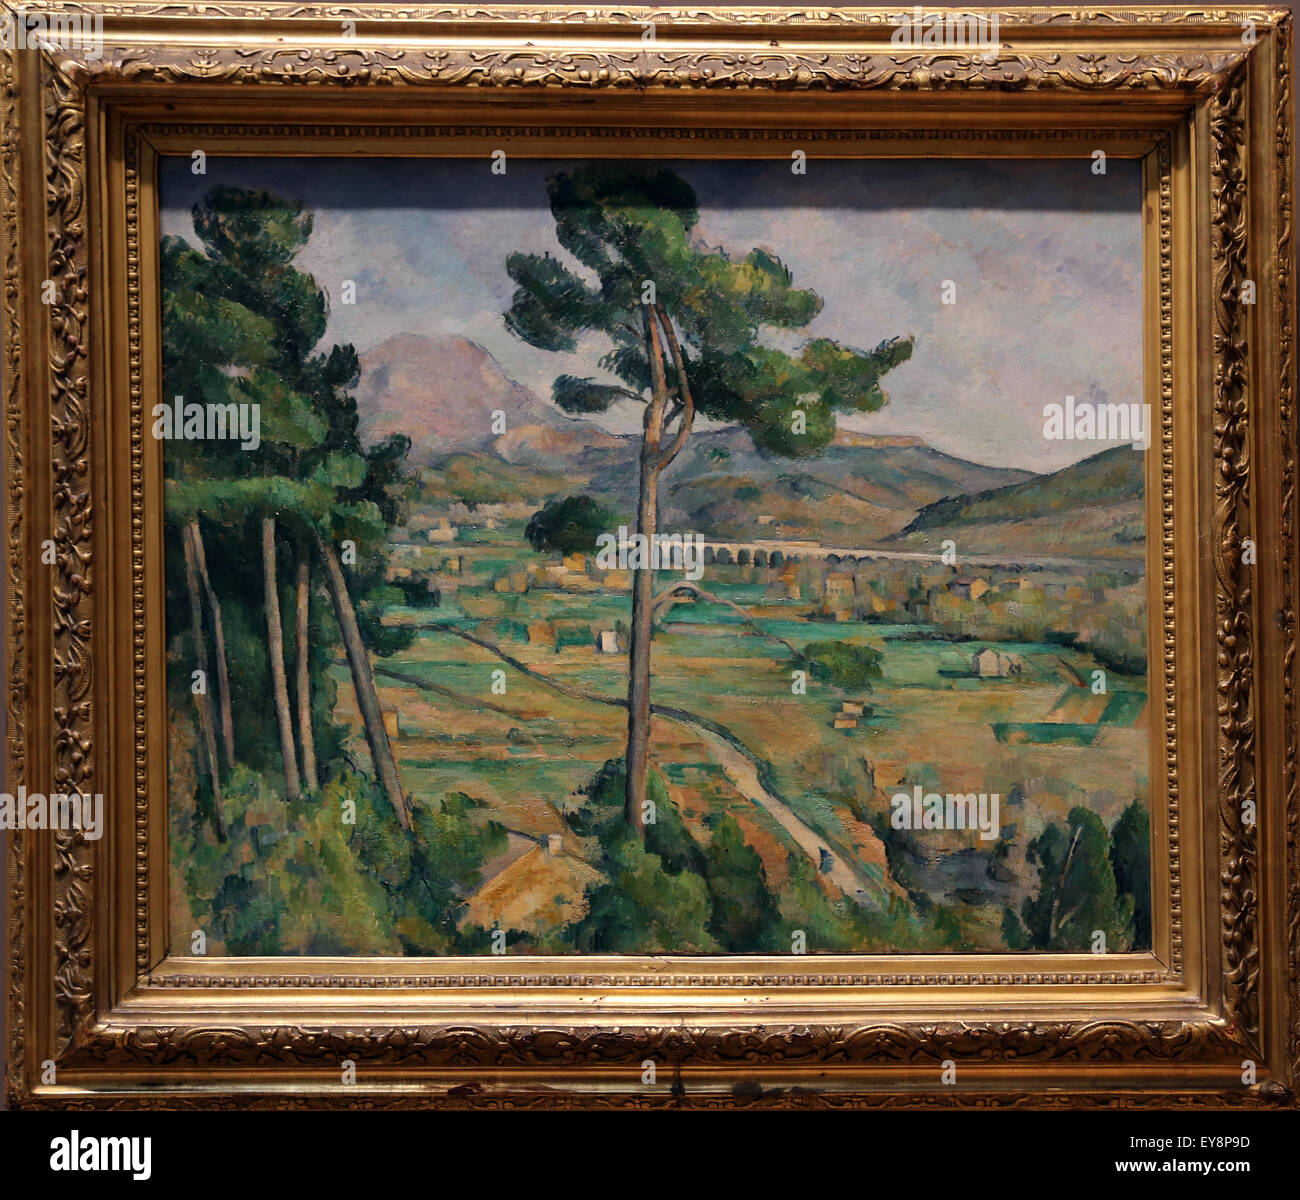 Paul Cezanne (1839-1906). Mont Sainte-Victoire and the Viaduct of the Arc River Vally, 1882-85. Oil on canvas. - Stock Image